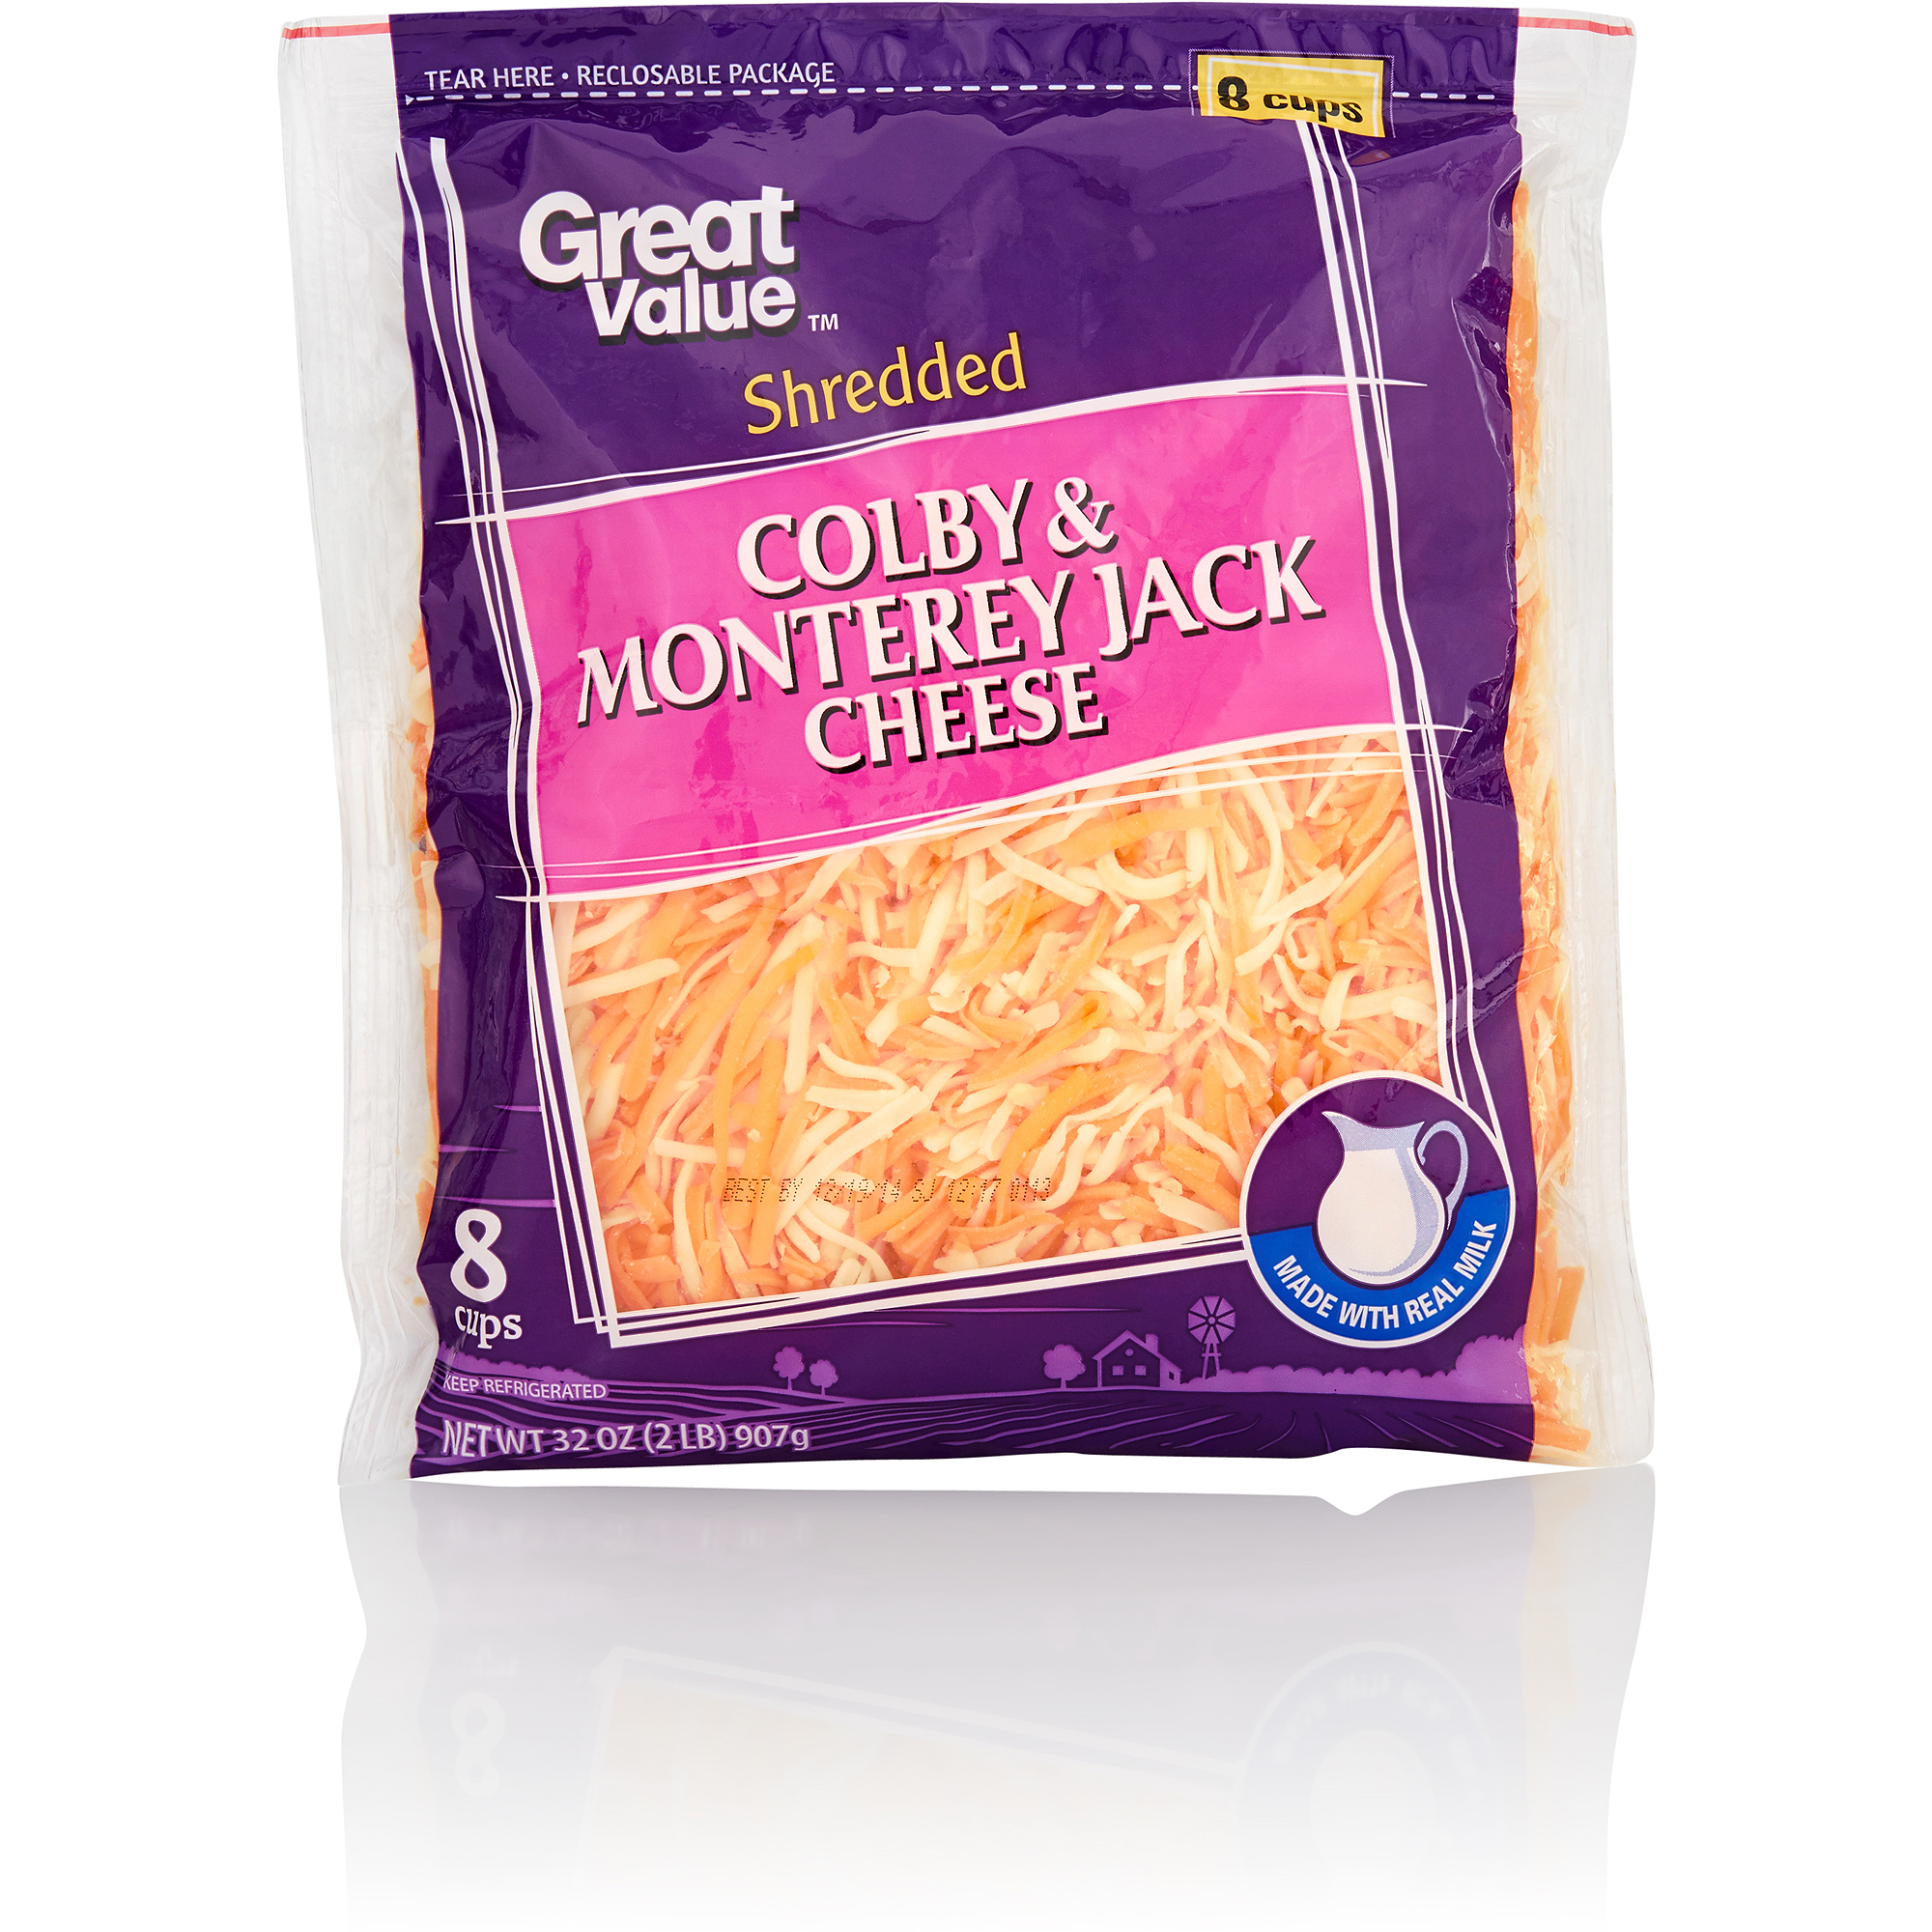 Great Value Shredded Colby And Monterey Jack Cheese, 32 oz